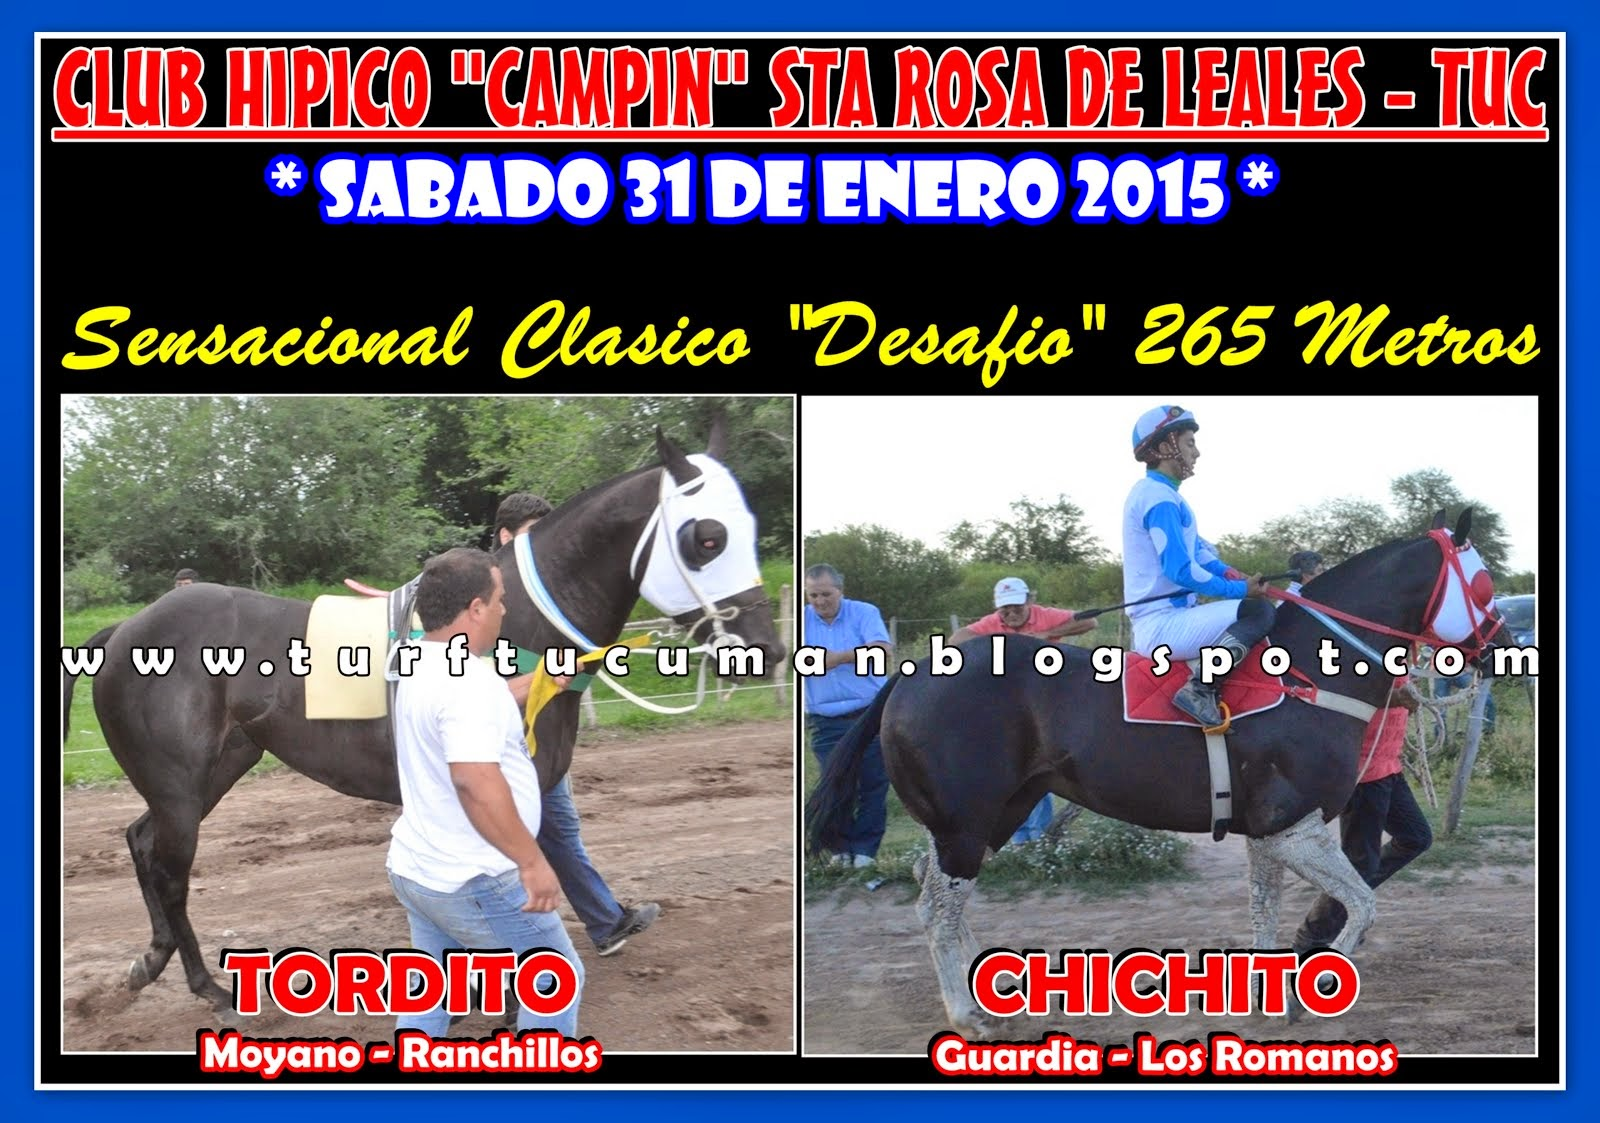 TORDITO VS CHICHITO